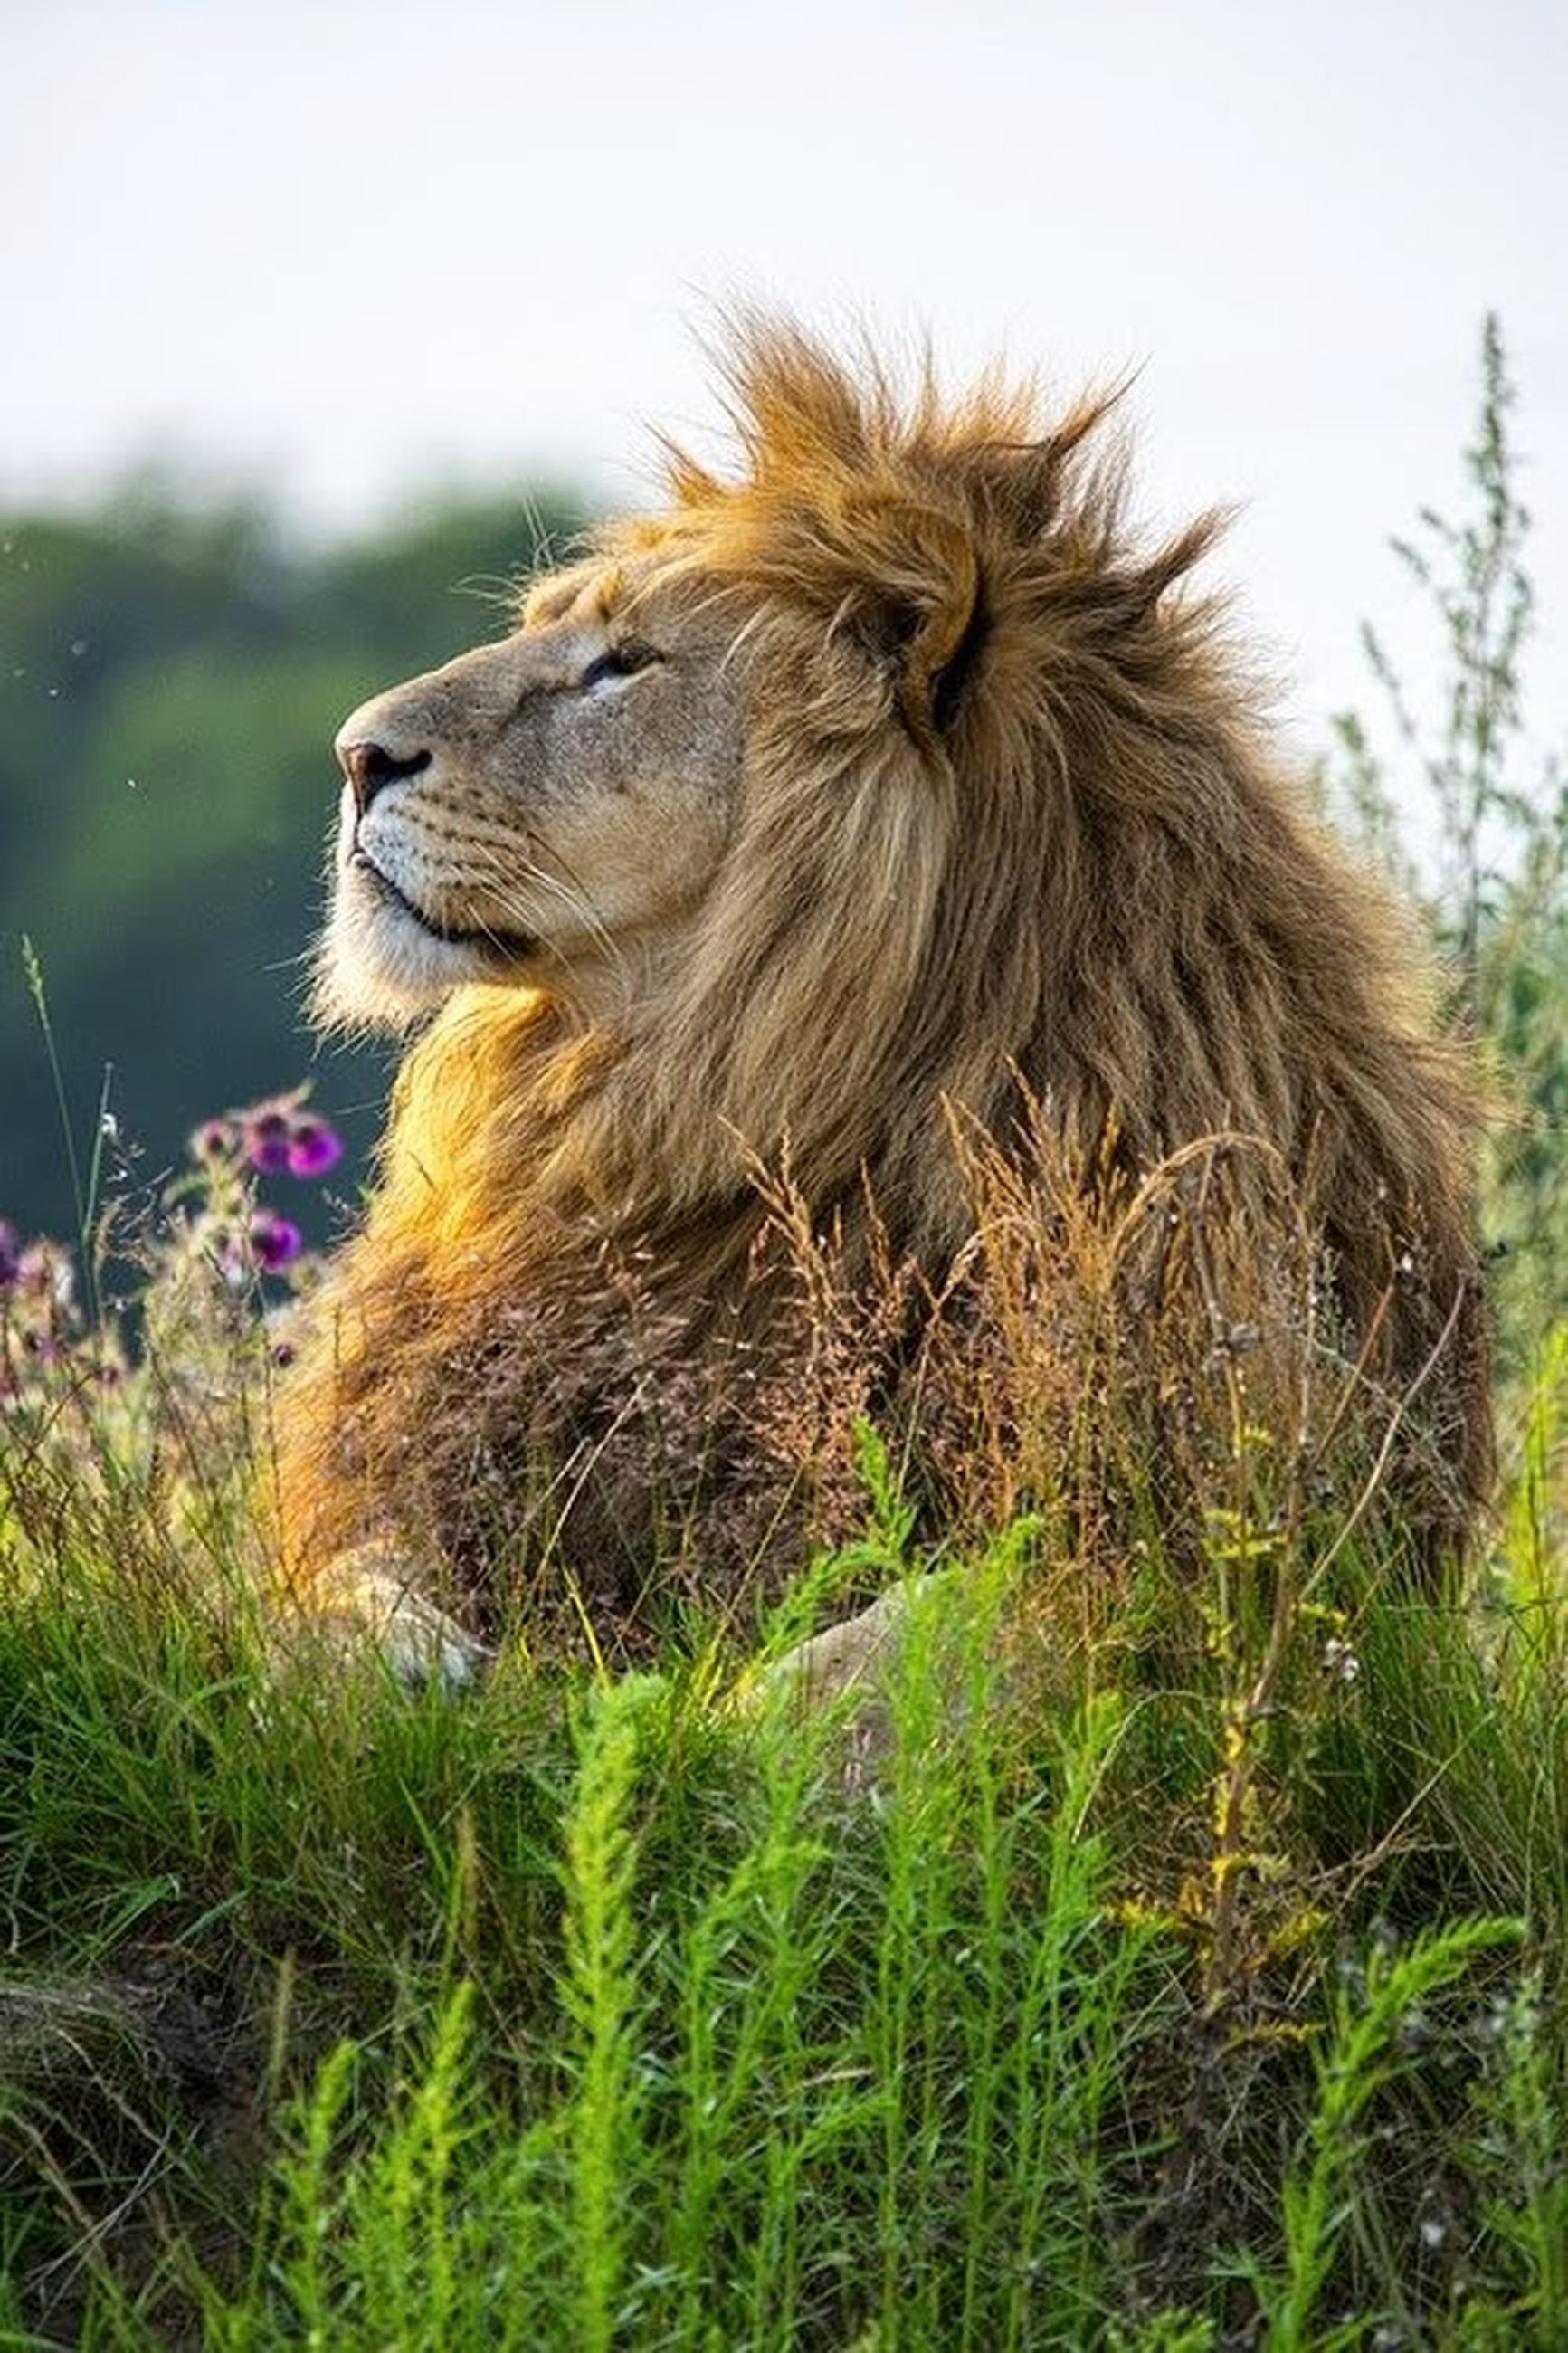 animal themes, one animal, grass, mammal, animal head, animals in the wild, field, domestic animals, wildlife, close-up, focus on foreground, nature, animal hair, side view, grassy, animal body part, outdoors, day, no people, plant